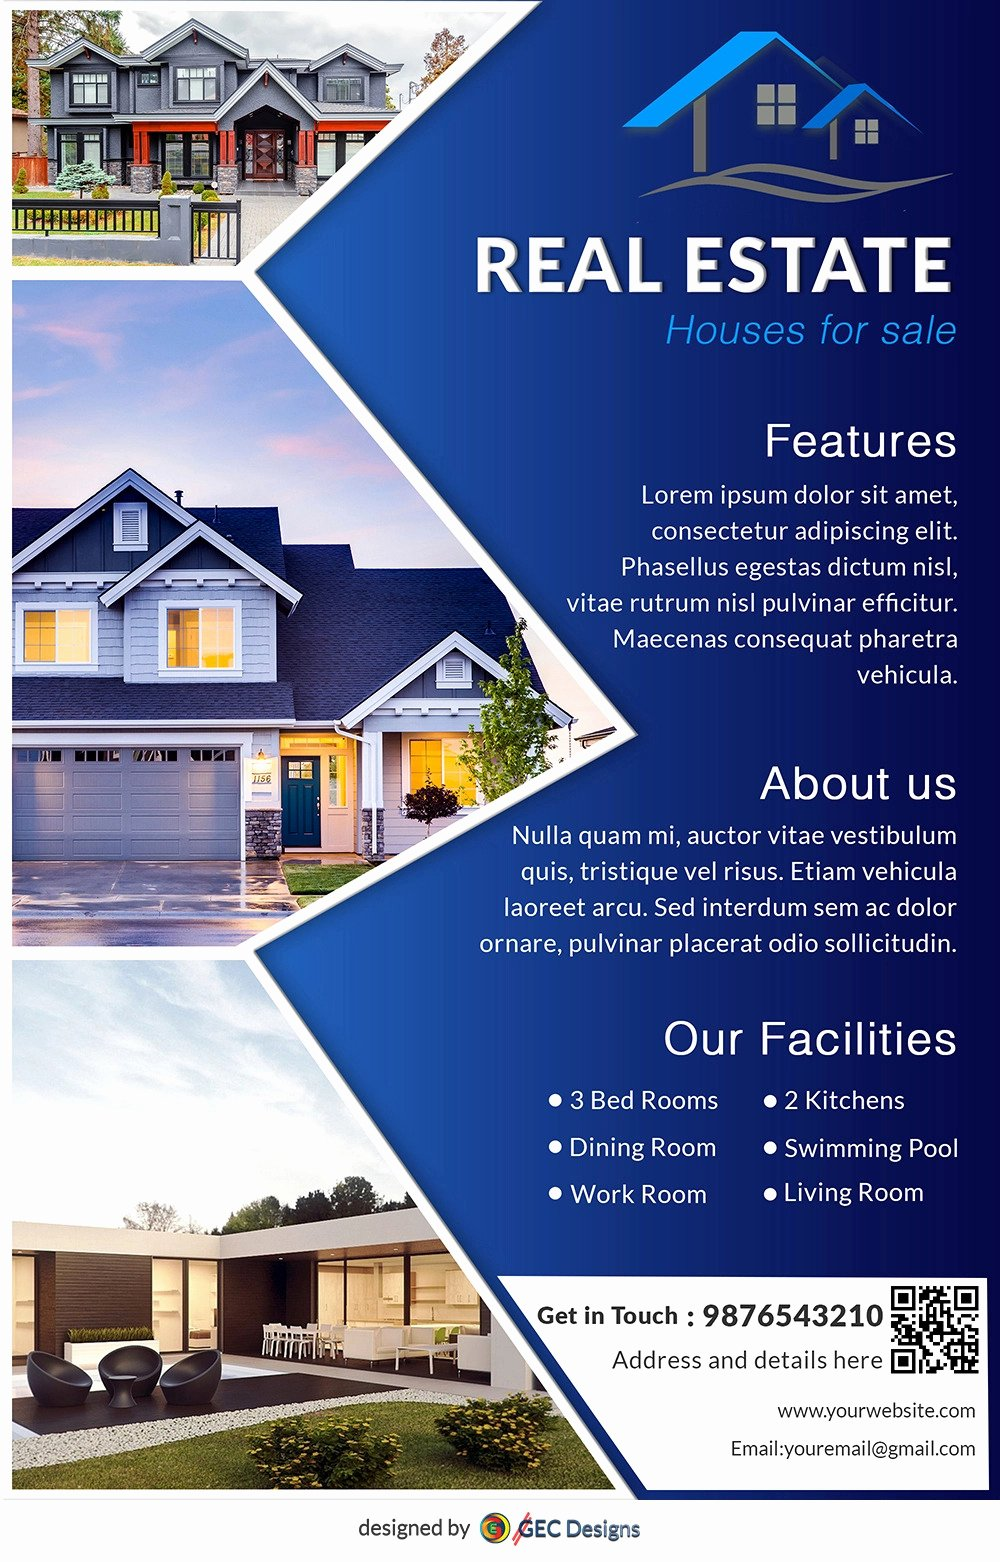 Home for Sale Flyer Best Of Download Free House for Sale Real Estate Flyer Design